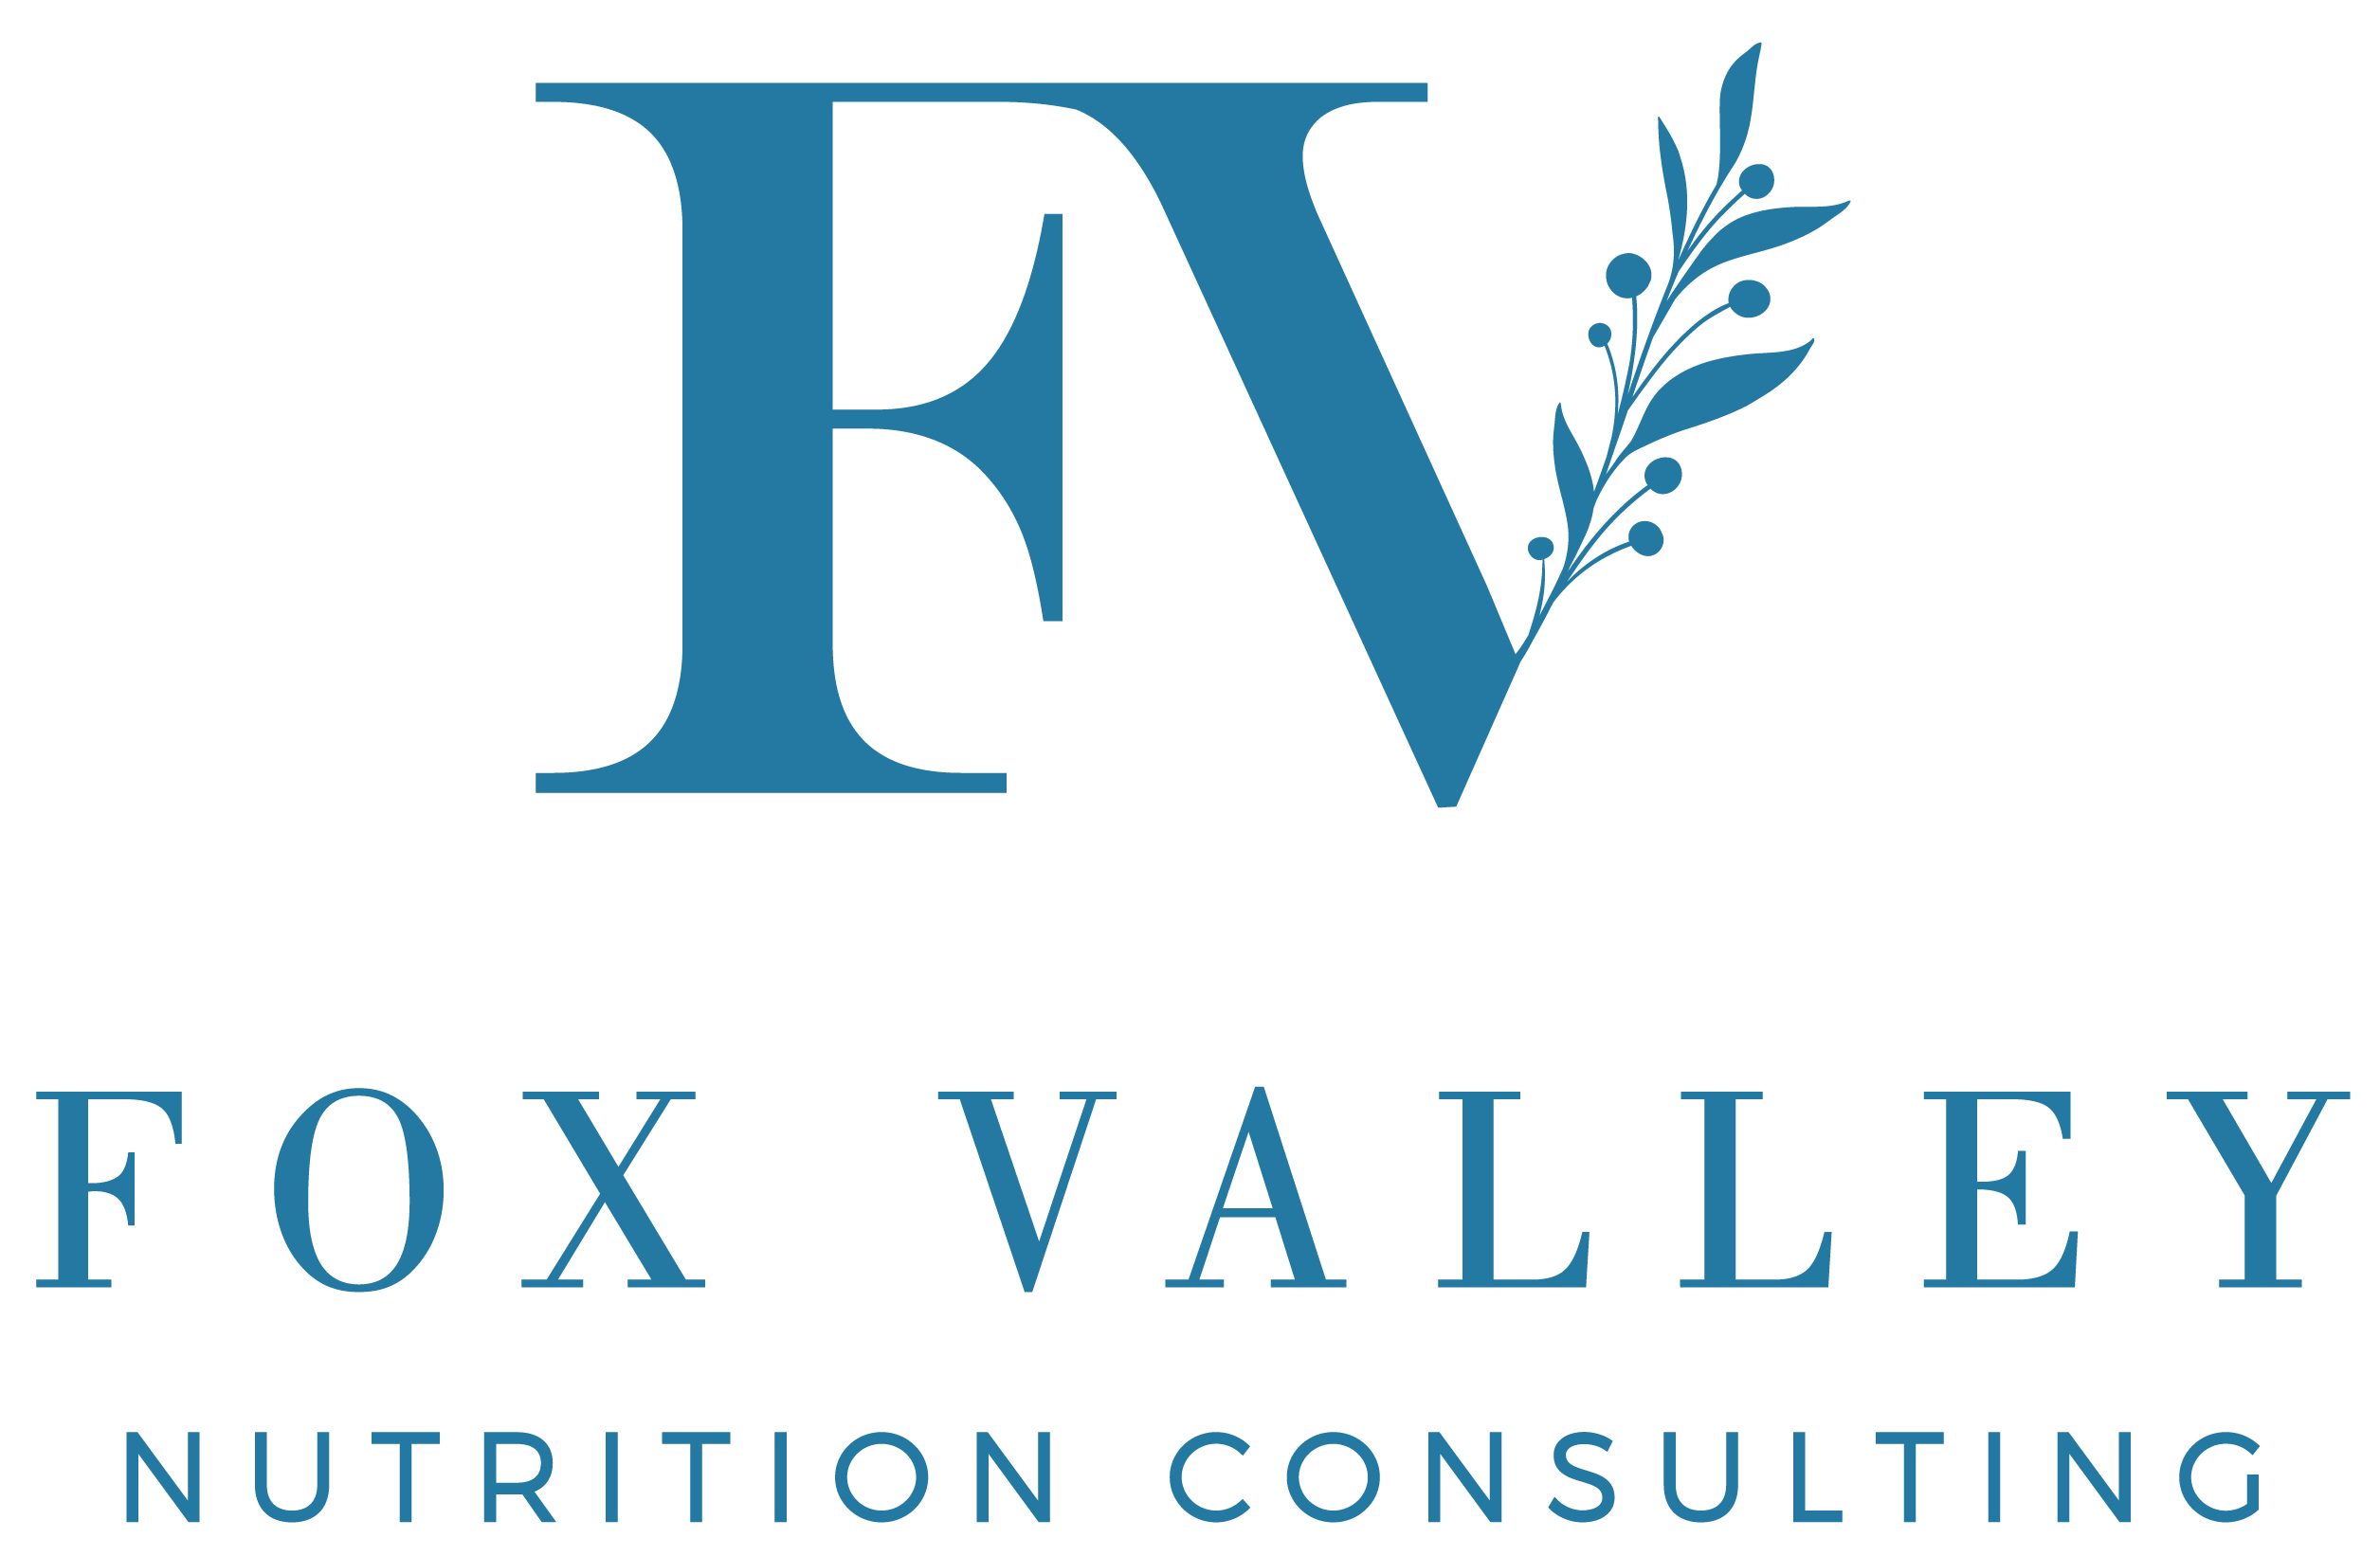 Fox Valley Nutrition Consulting